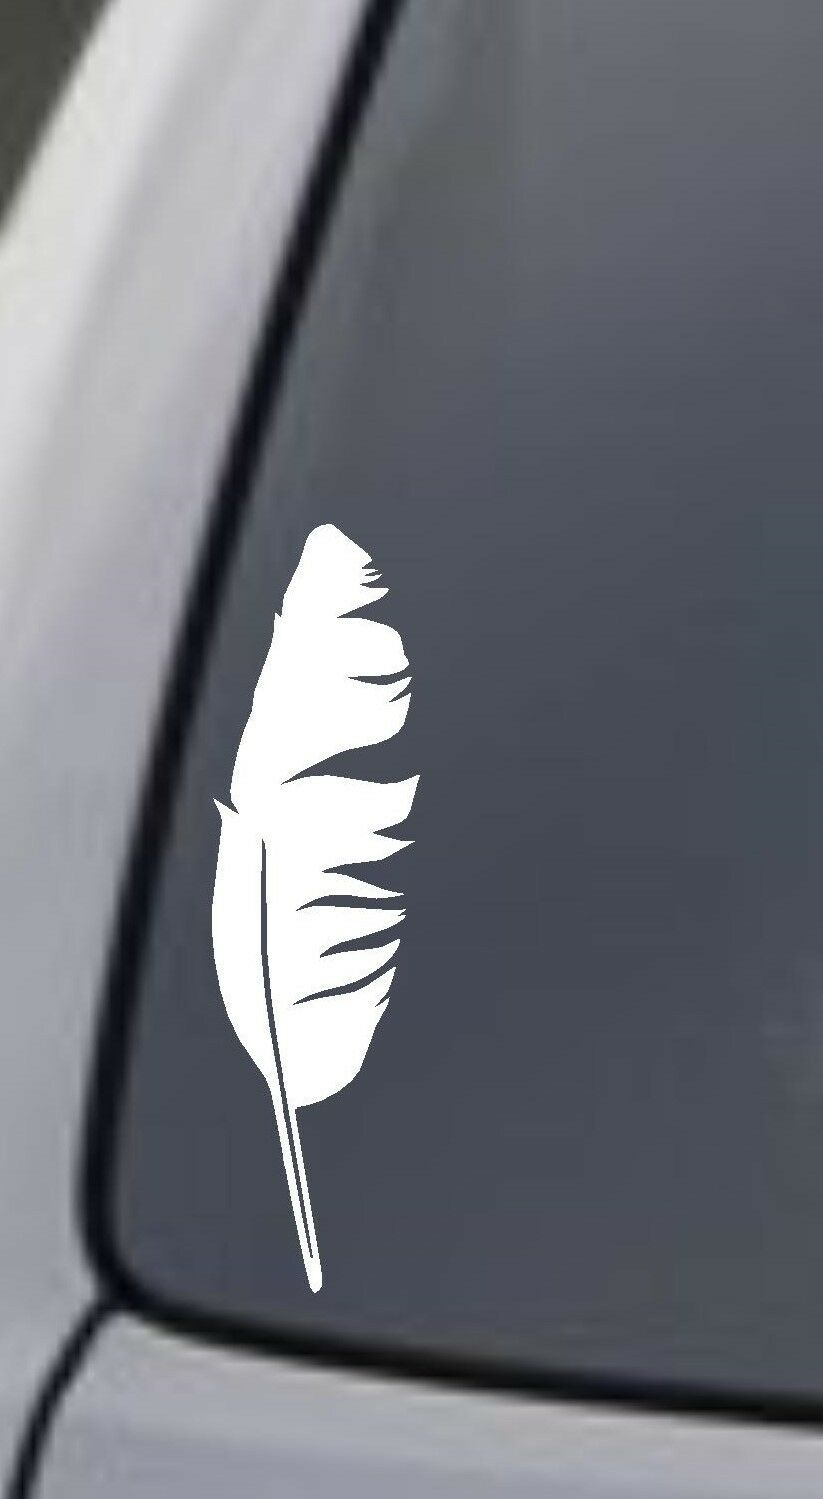 FEATHER Vinyl Decal Car Window Wall Bumper Macbook Laptop Na